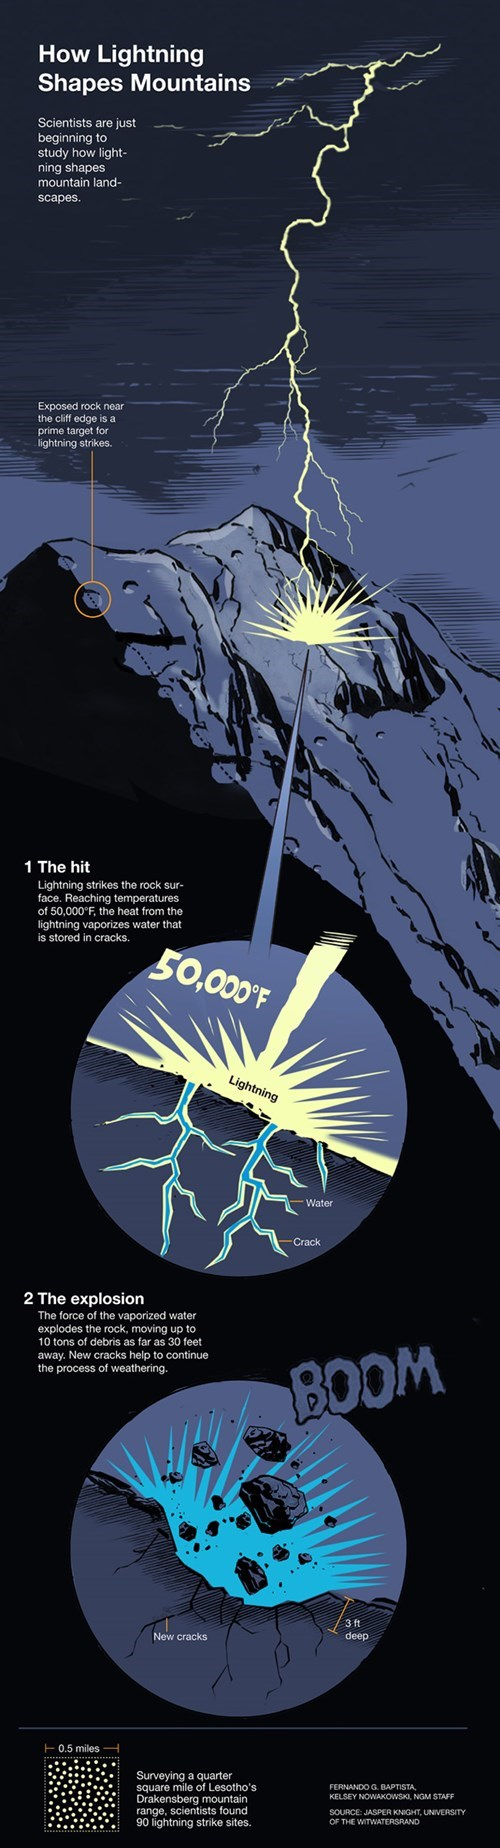 mountains geology explosions science lightning - 8003585280